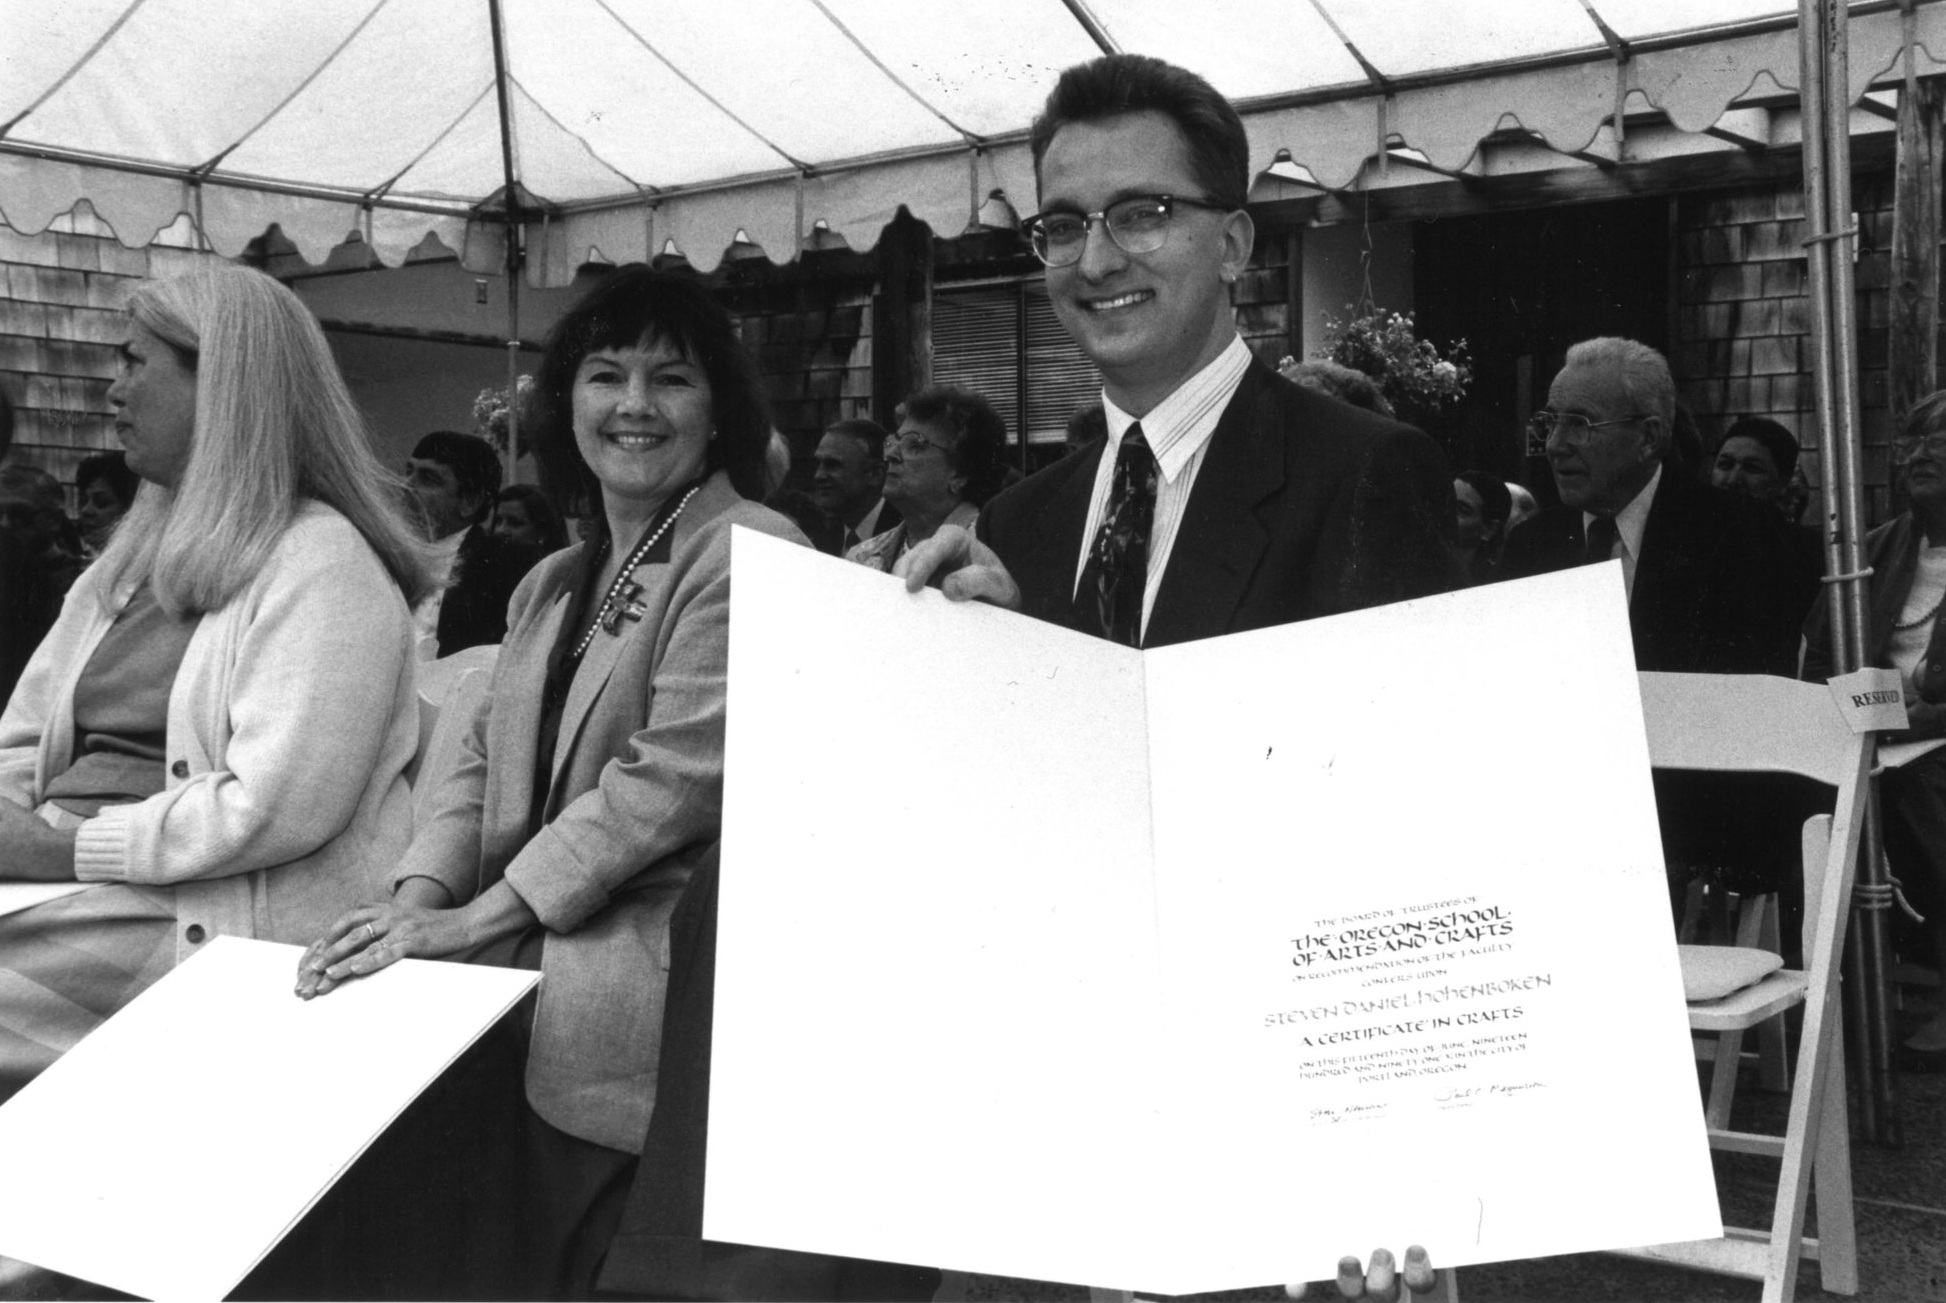 Janene Cheng and Steve Hohenboken, first class of OSAC's Certificate in Craft, 1991 (OCAC)